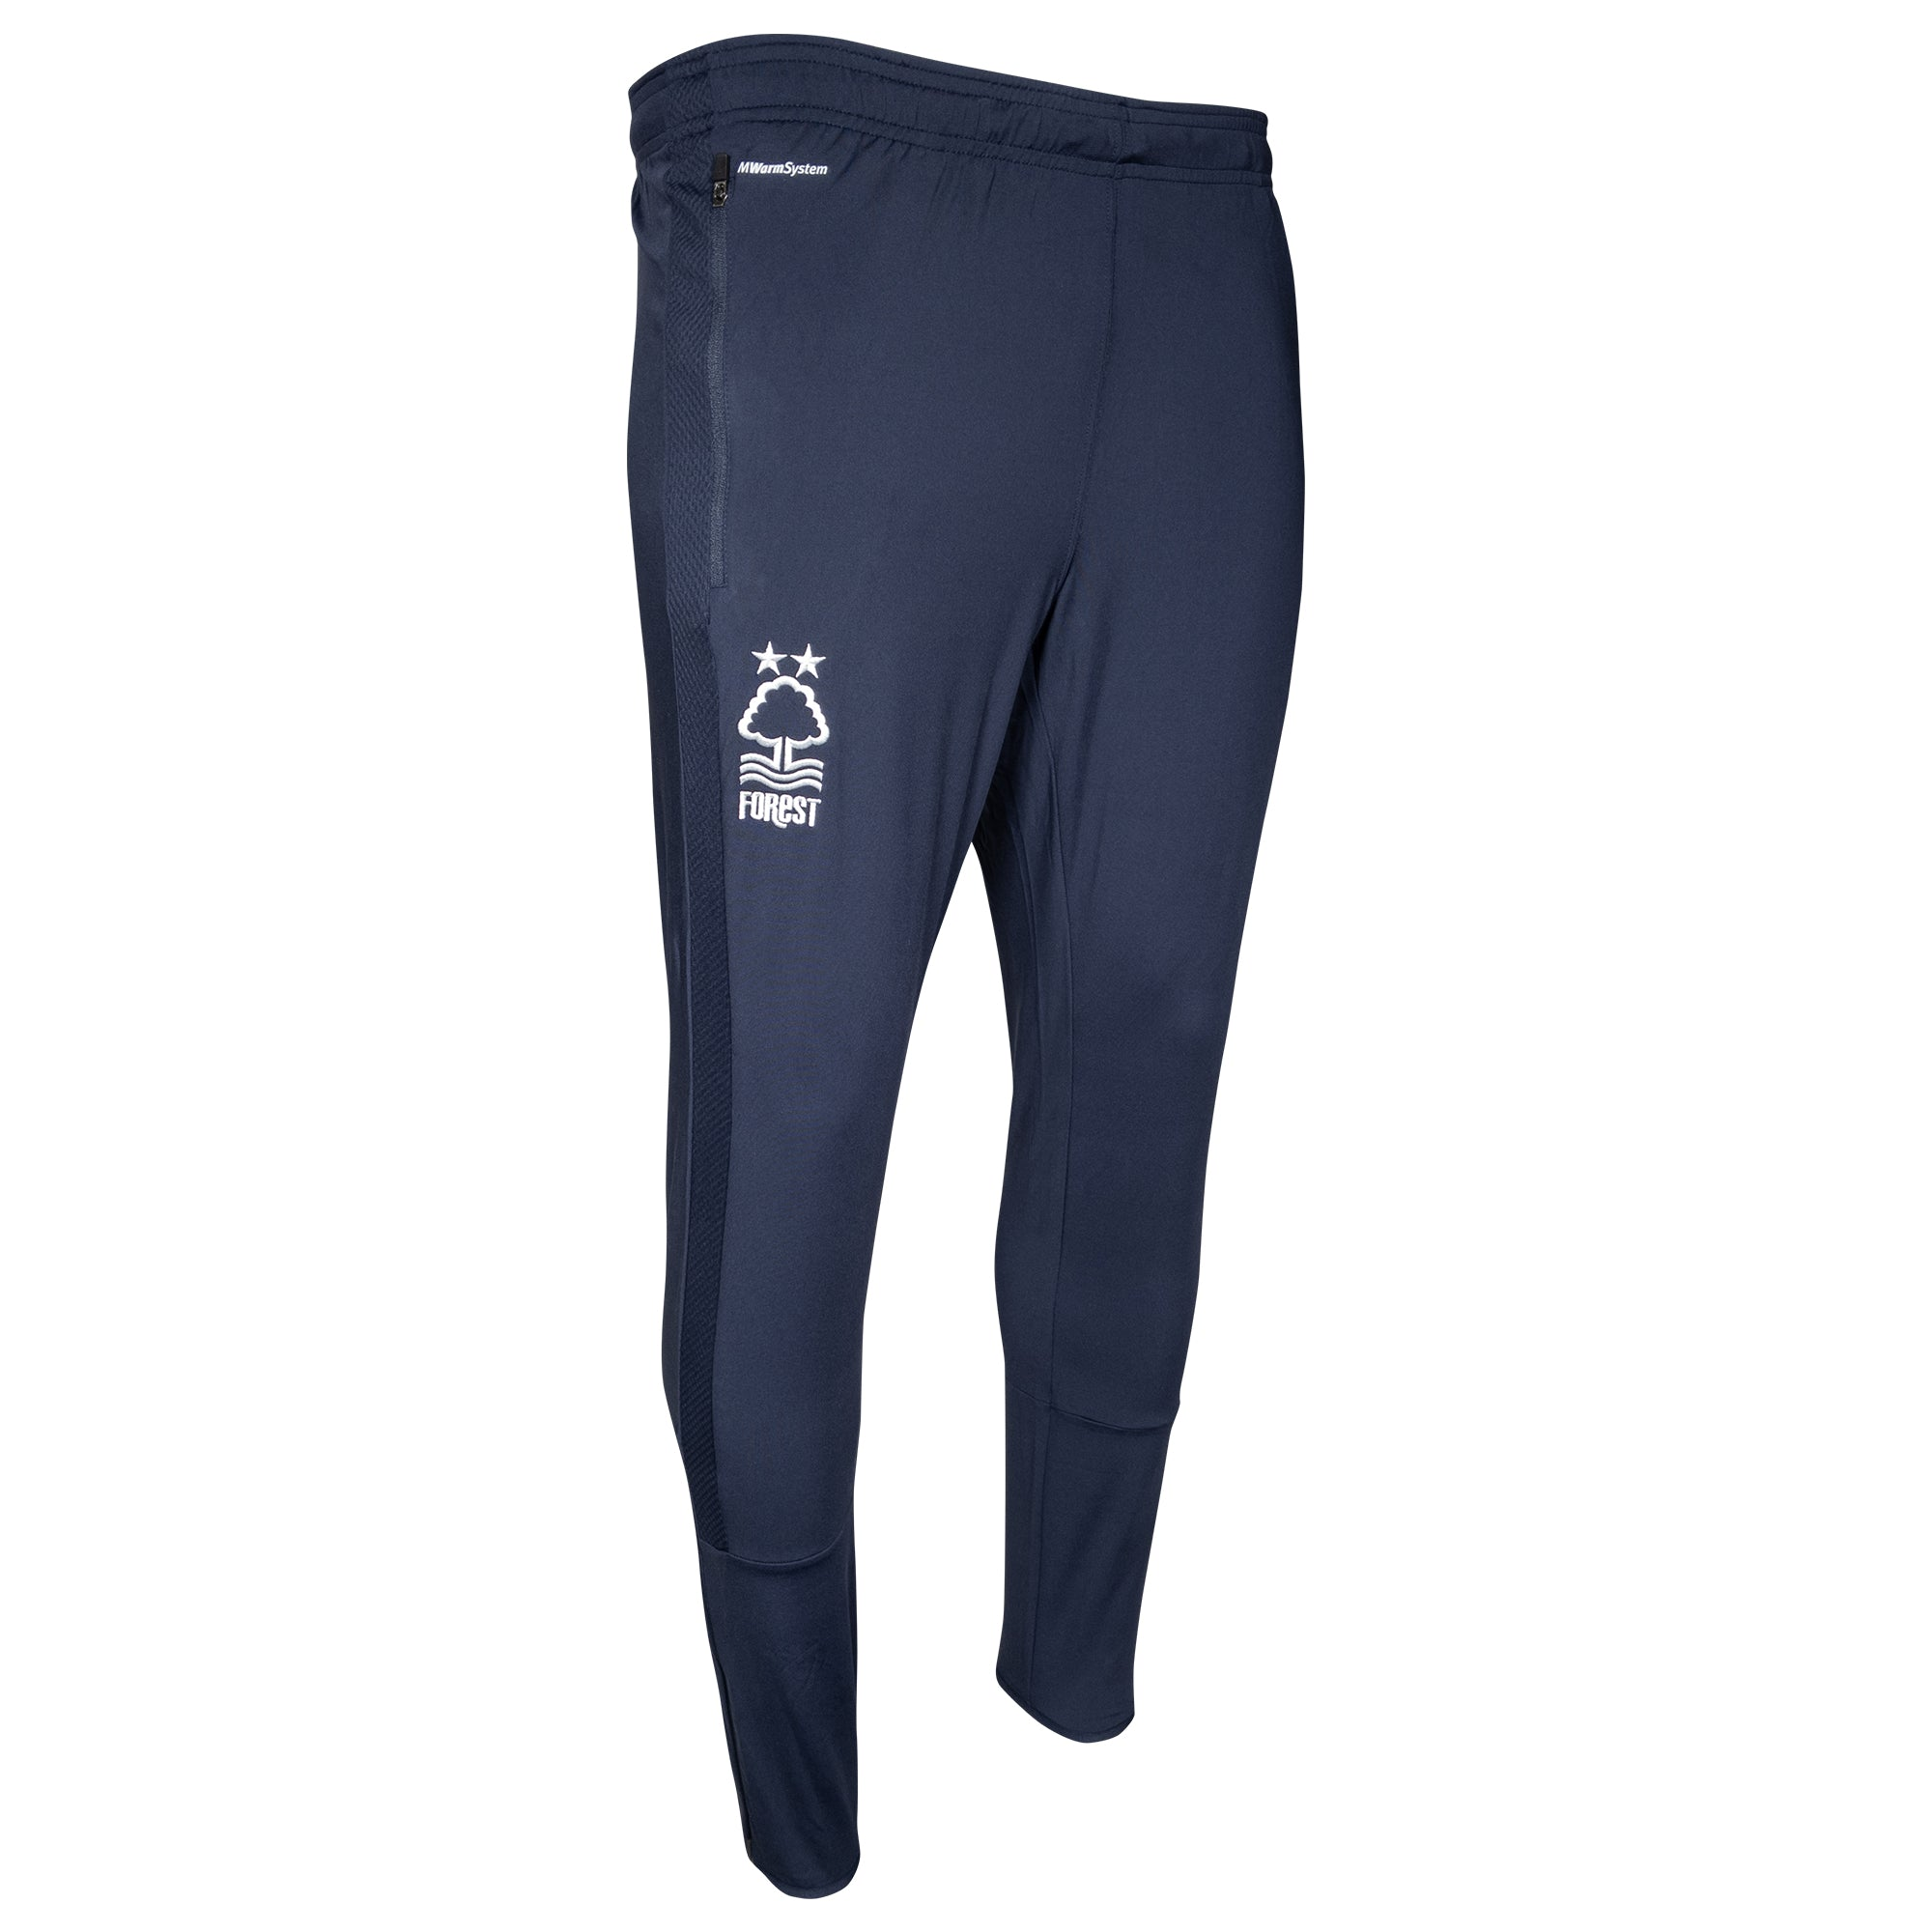 NFFC Junior Training Pant 2020/21